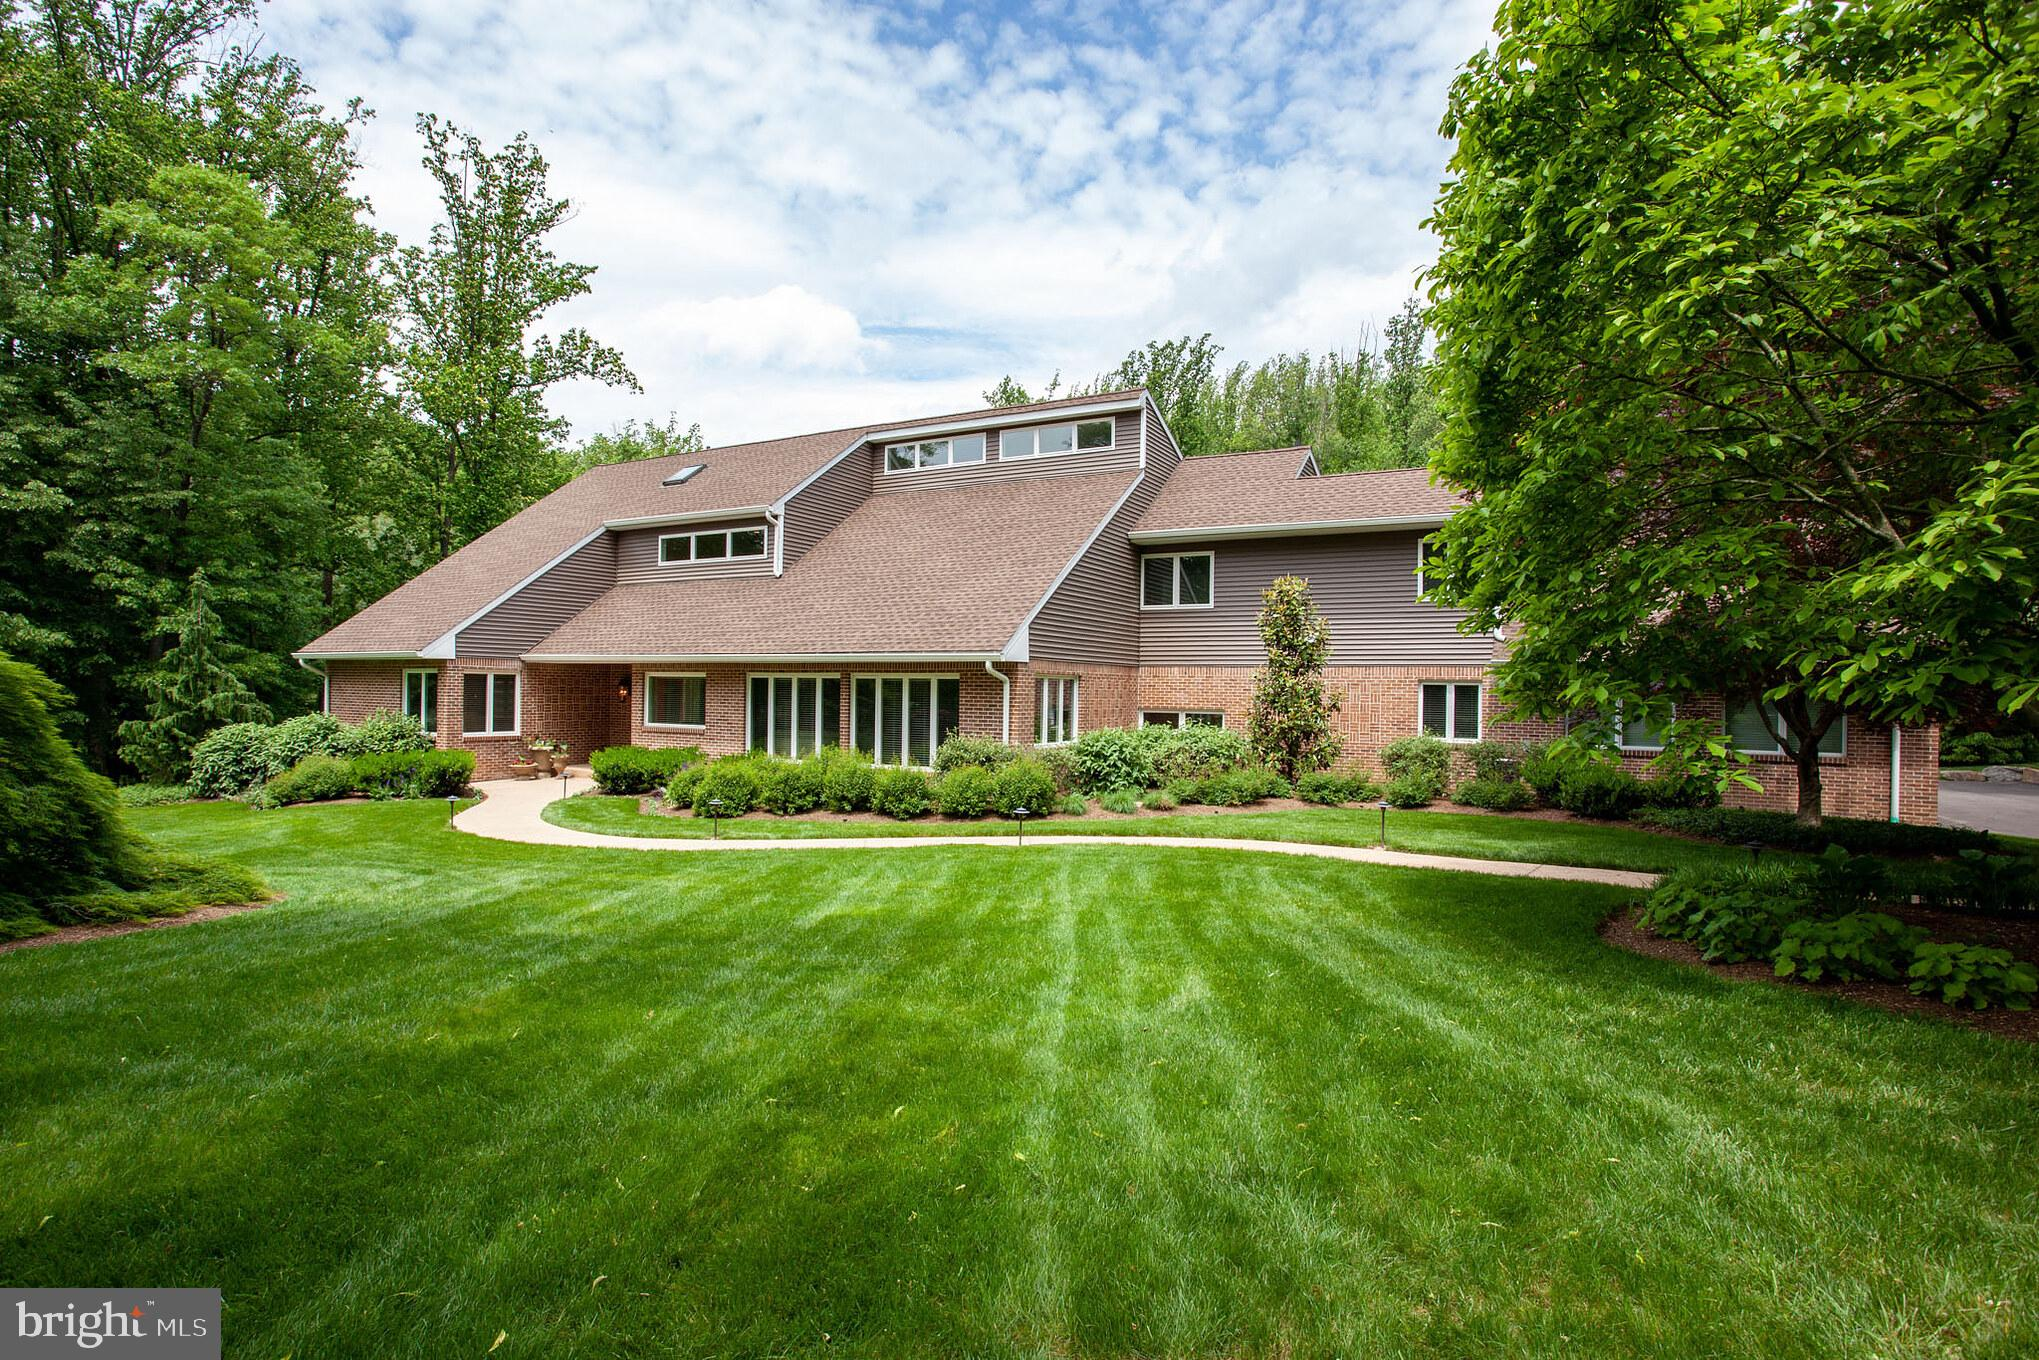 1546 STOCTON ROAD, MEADOWBROOK, PA 19046